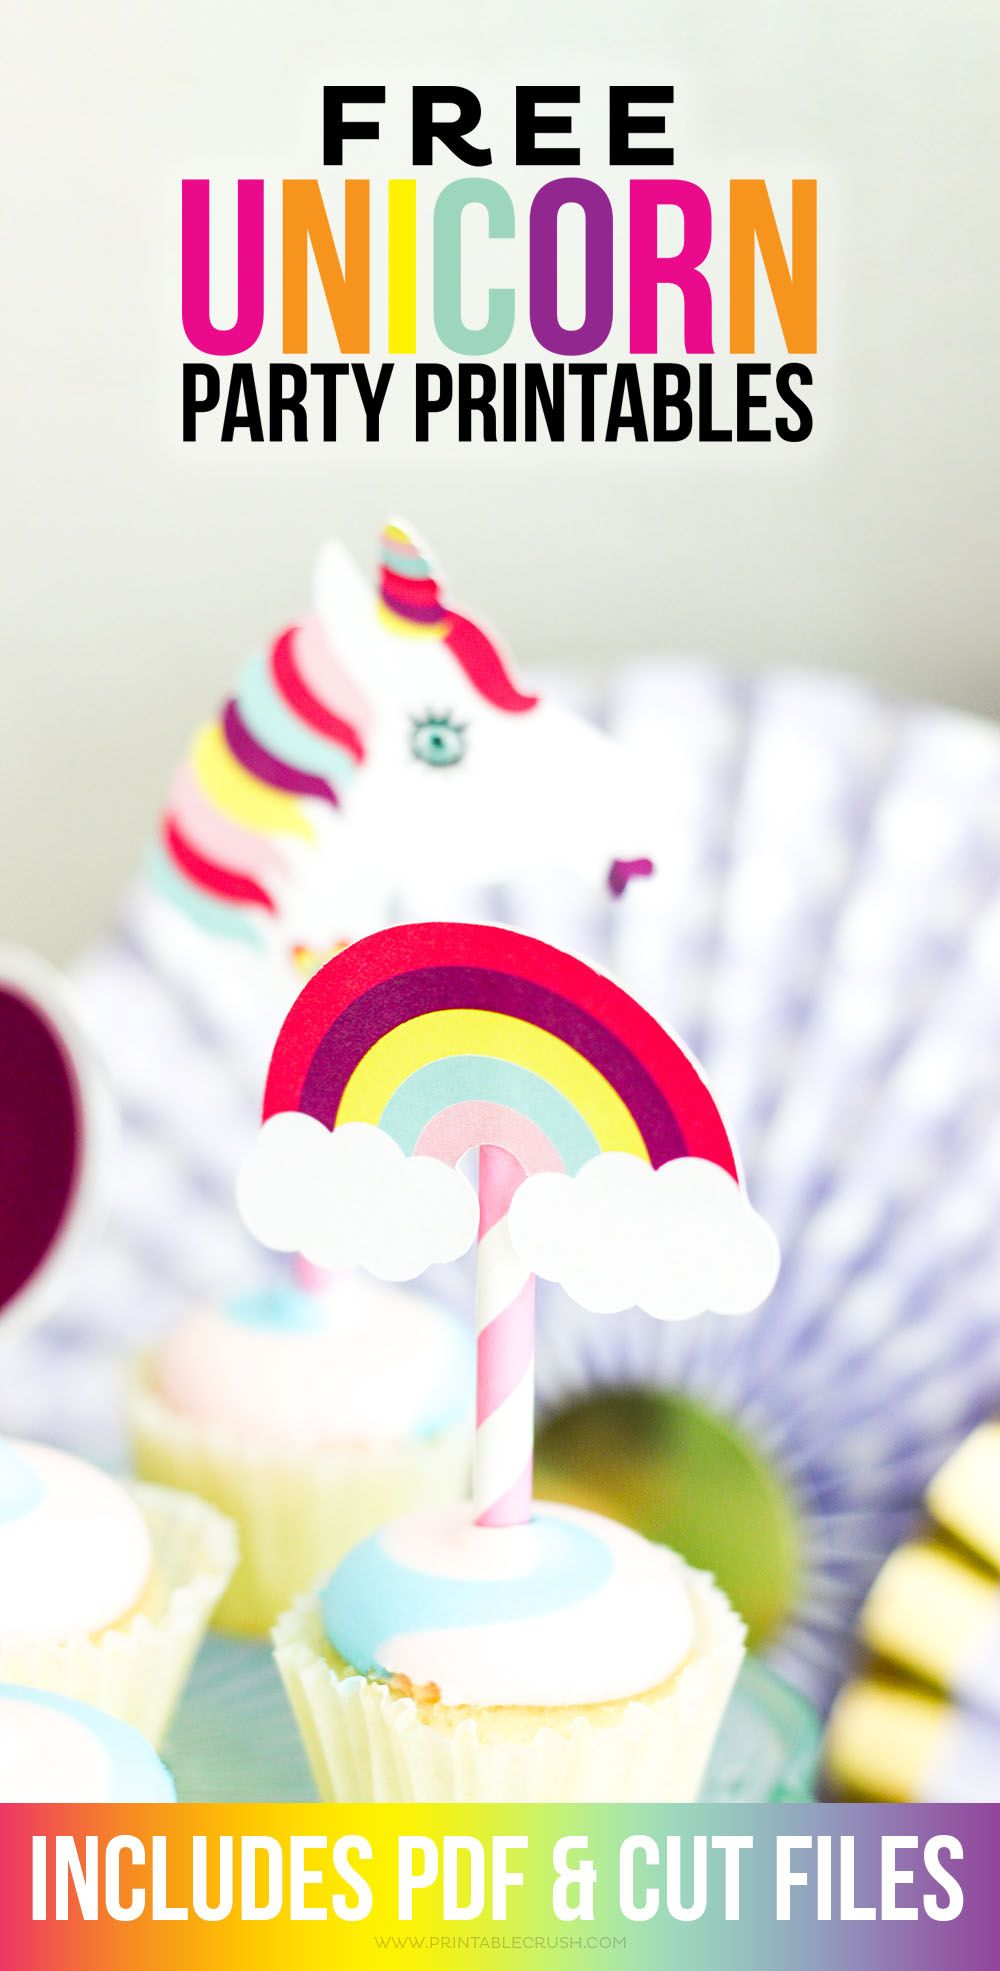 Download These Free Unicorn Party Printables For A